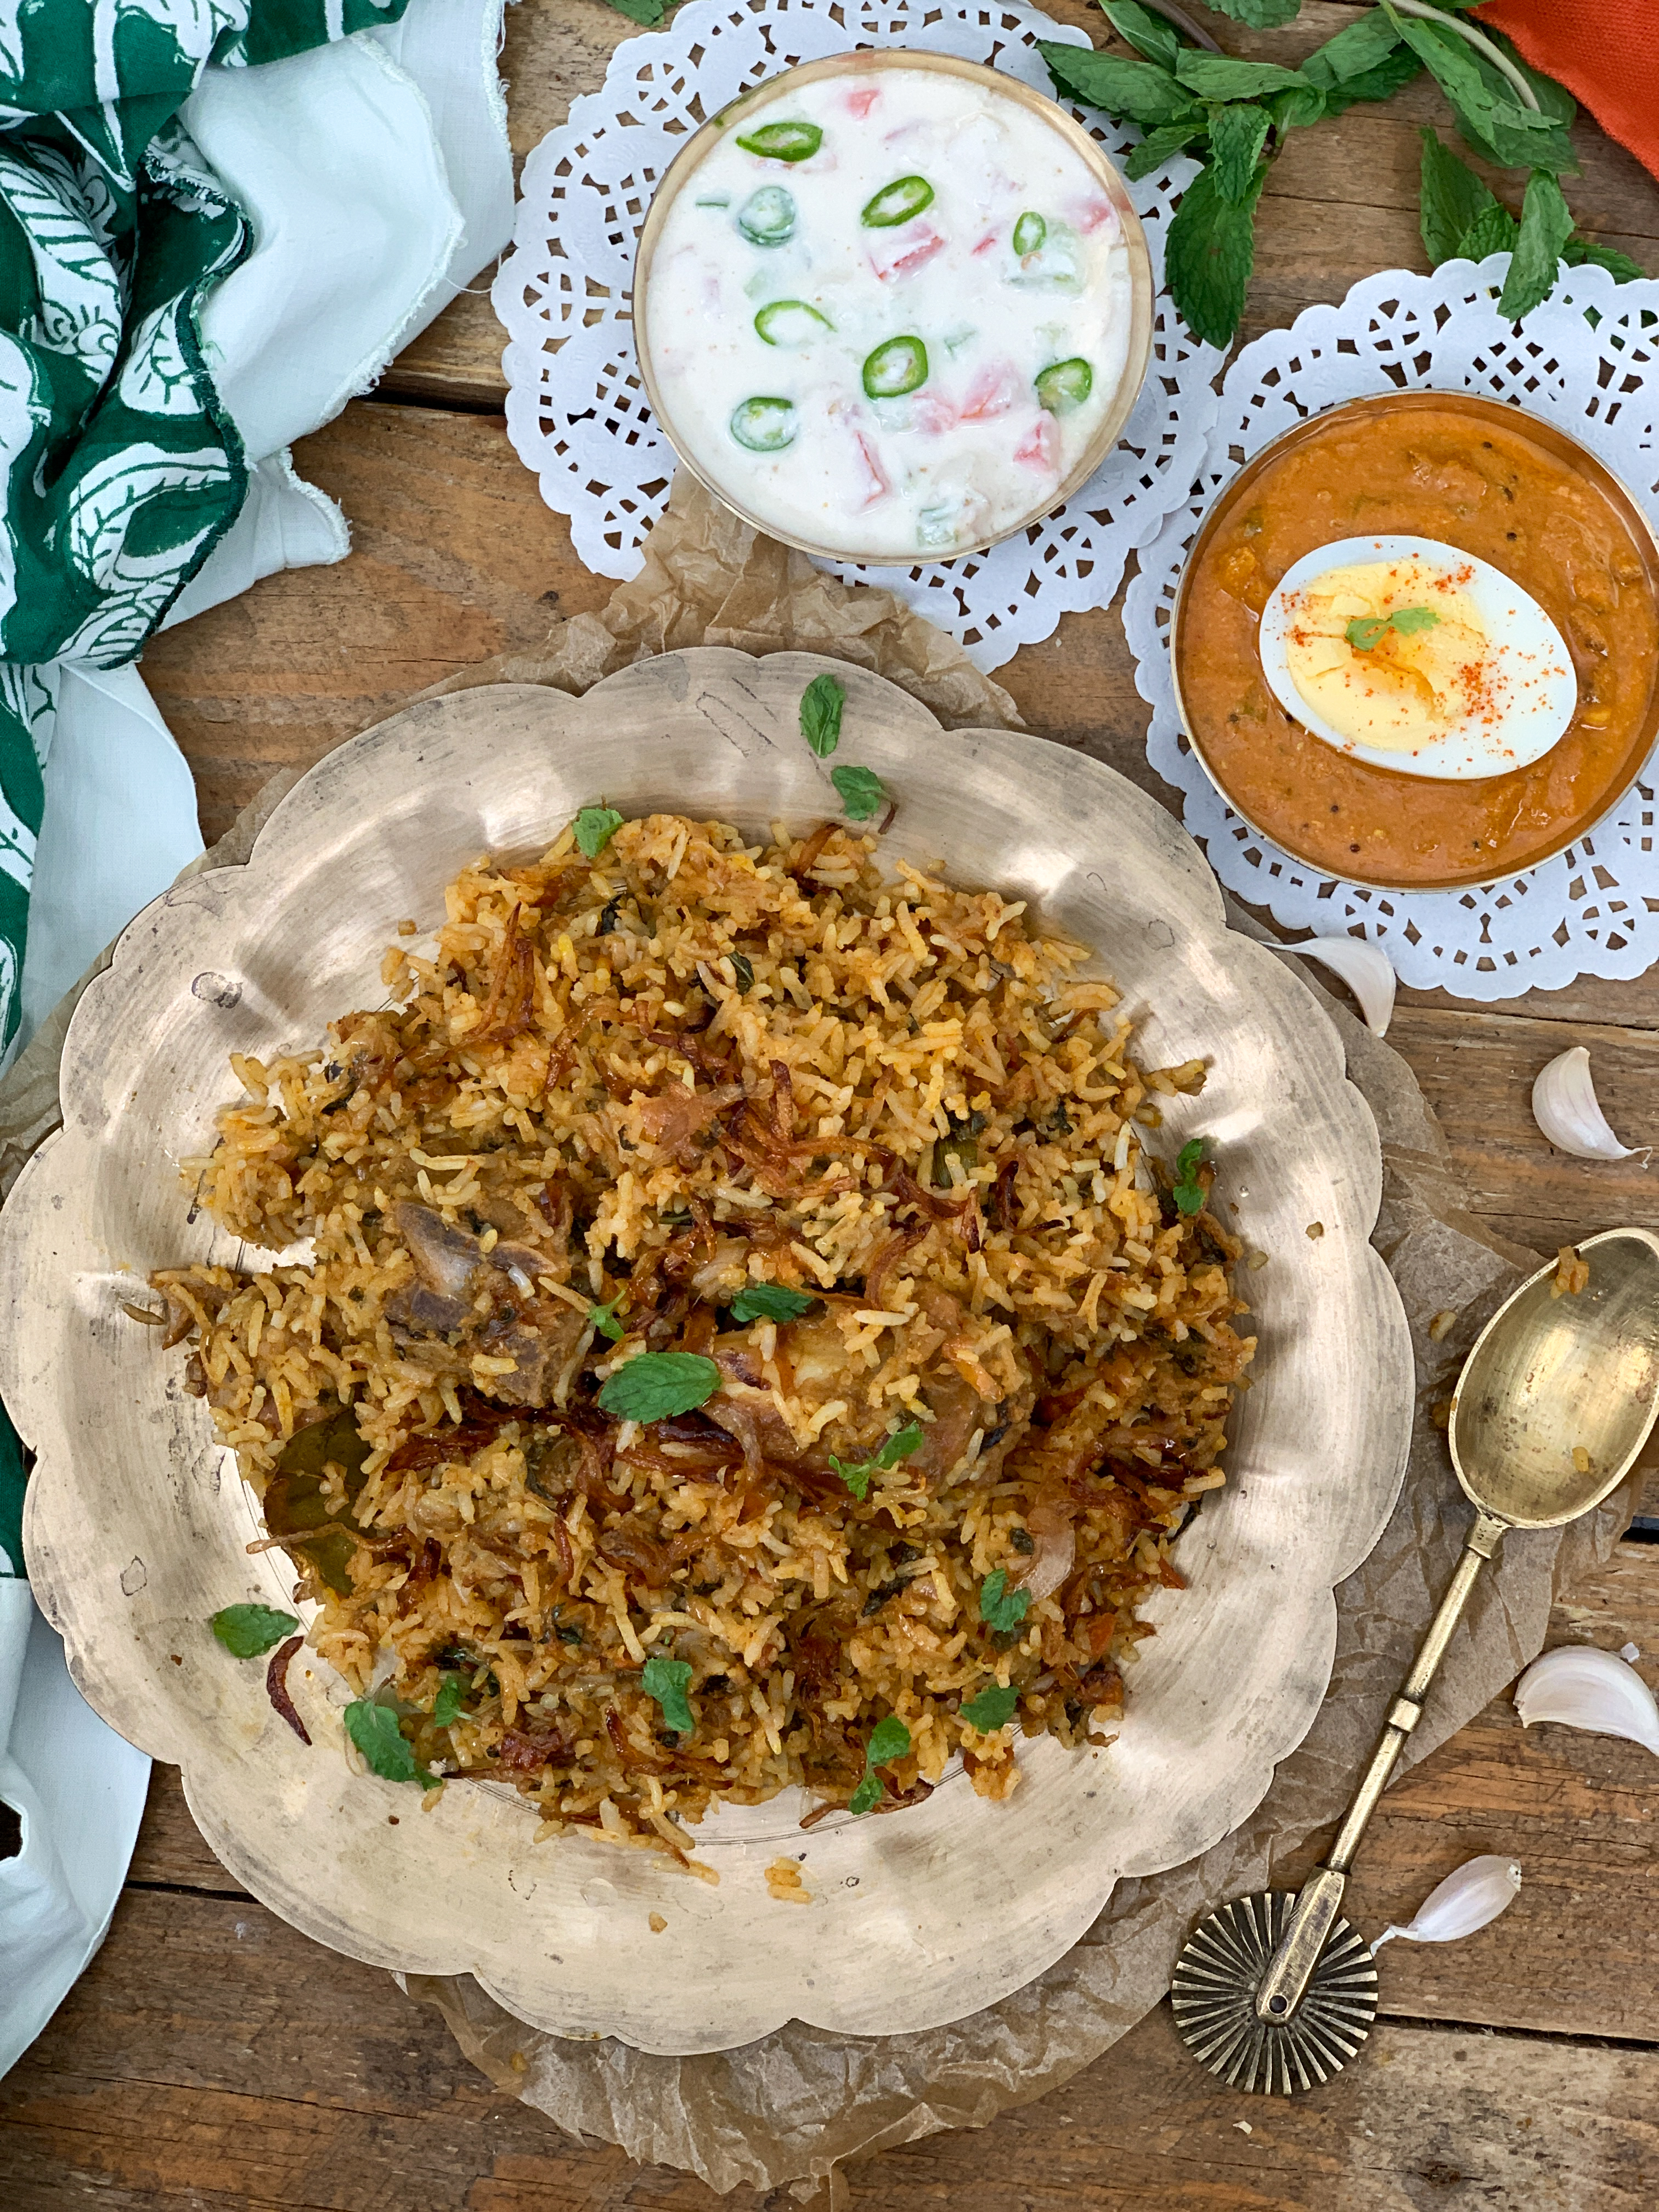 You Can't Miss This Mouthwatering Meal Of Mutton Biryani, Salan And Raita This Ramadan